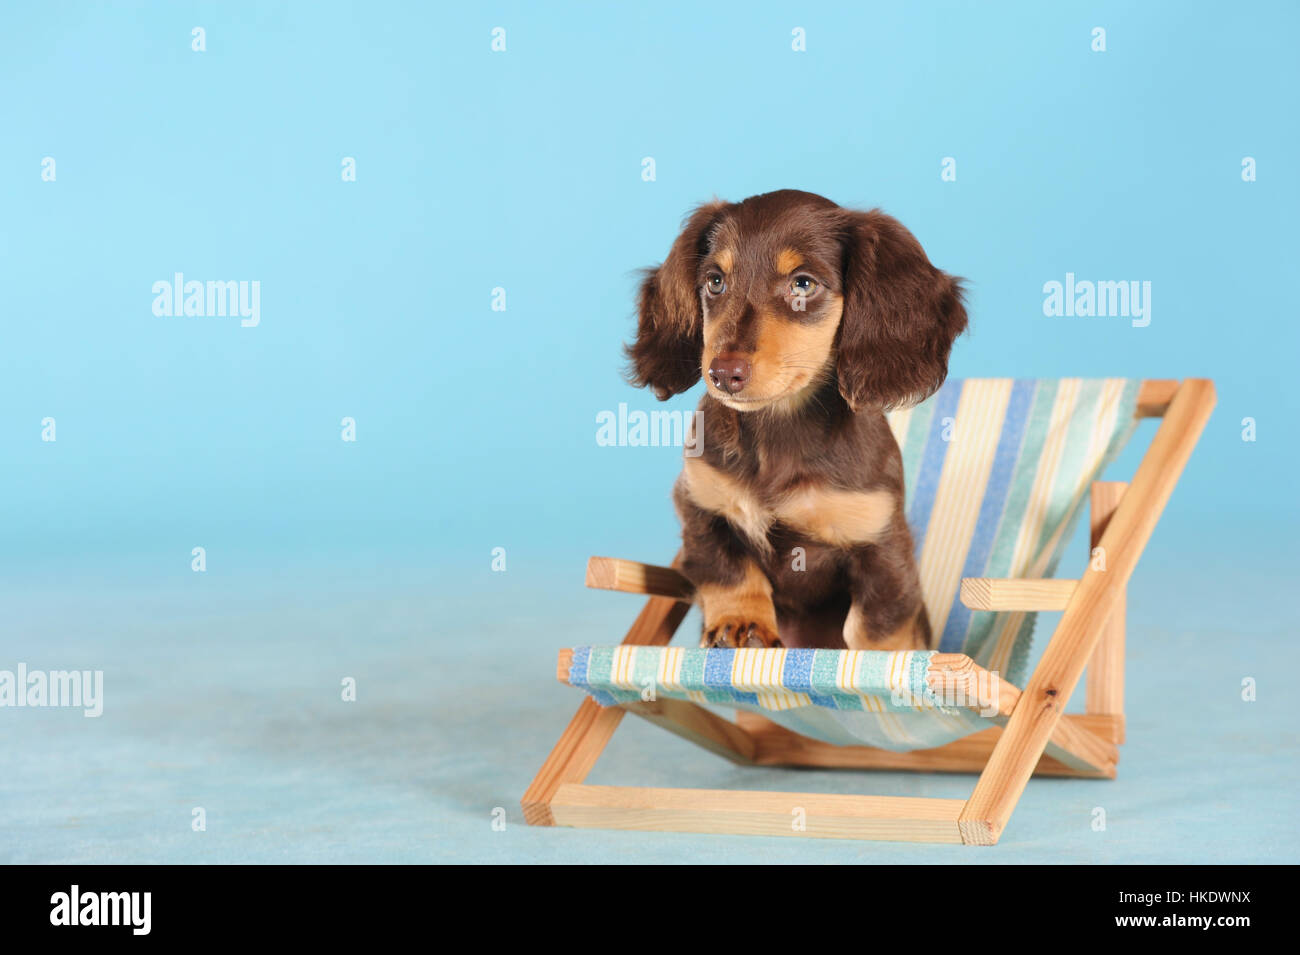 Miniature Dachshund Dog Puppy In Stock Photos & Miniature Dachshund ...